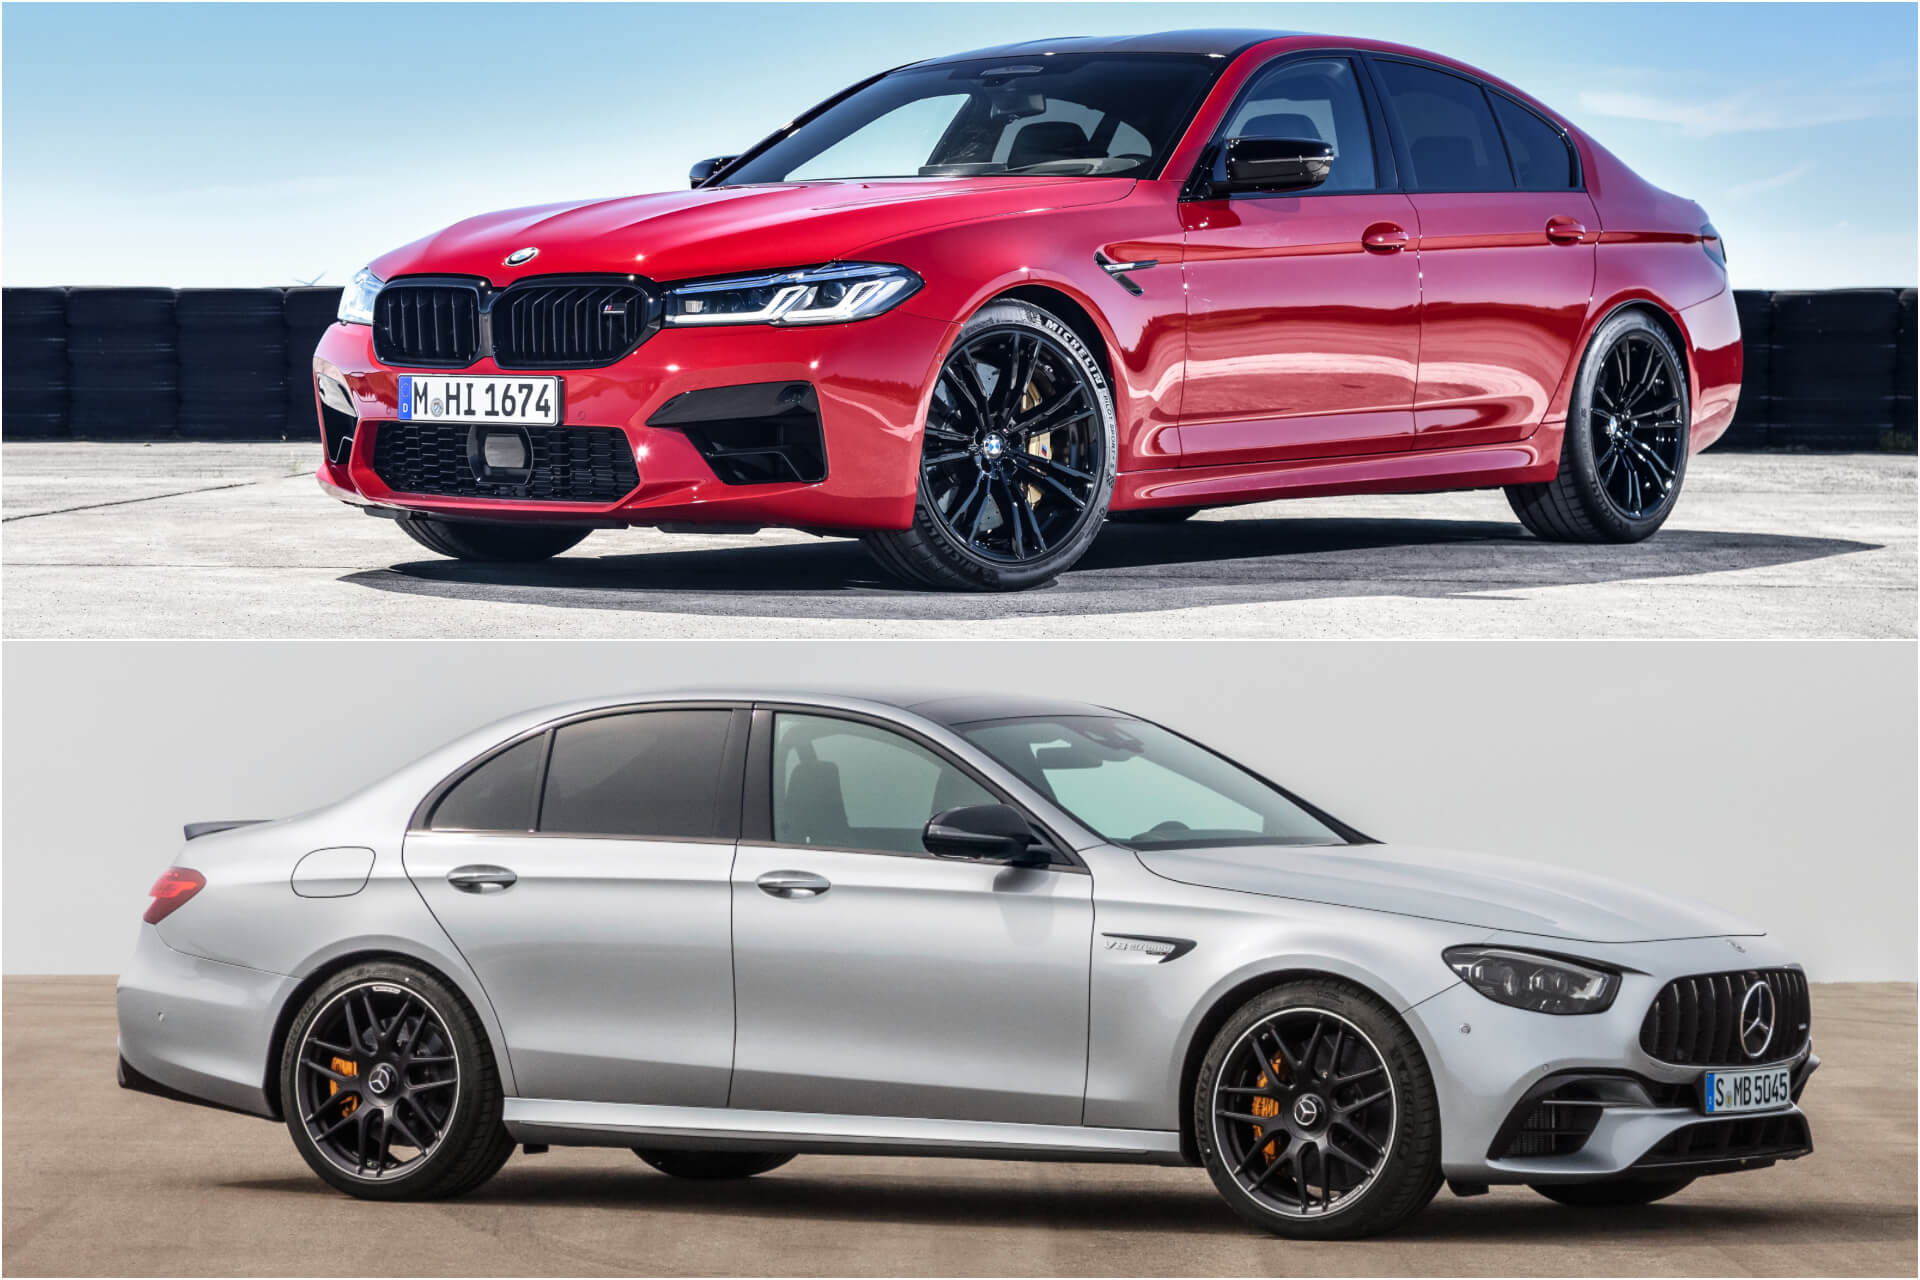 BMW M5 v Mercedes-AMG E 63: Facelifts for Germany's most famous über-saloons